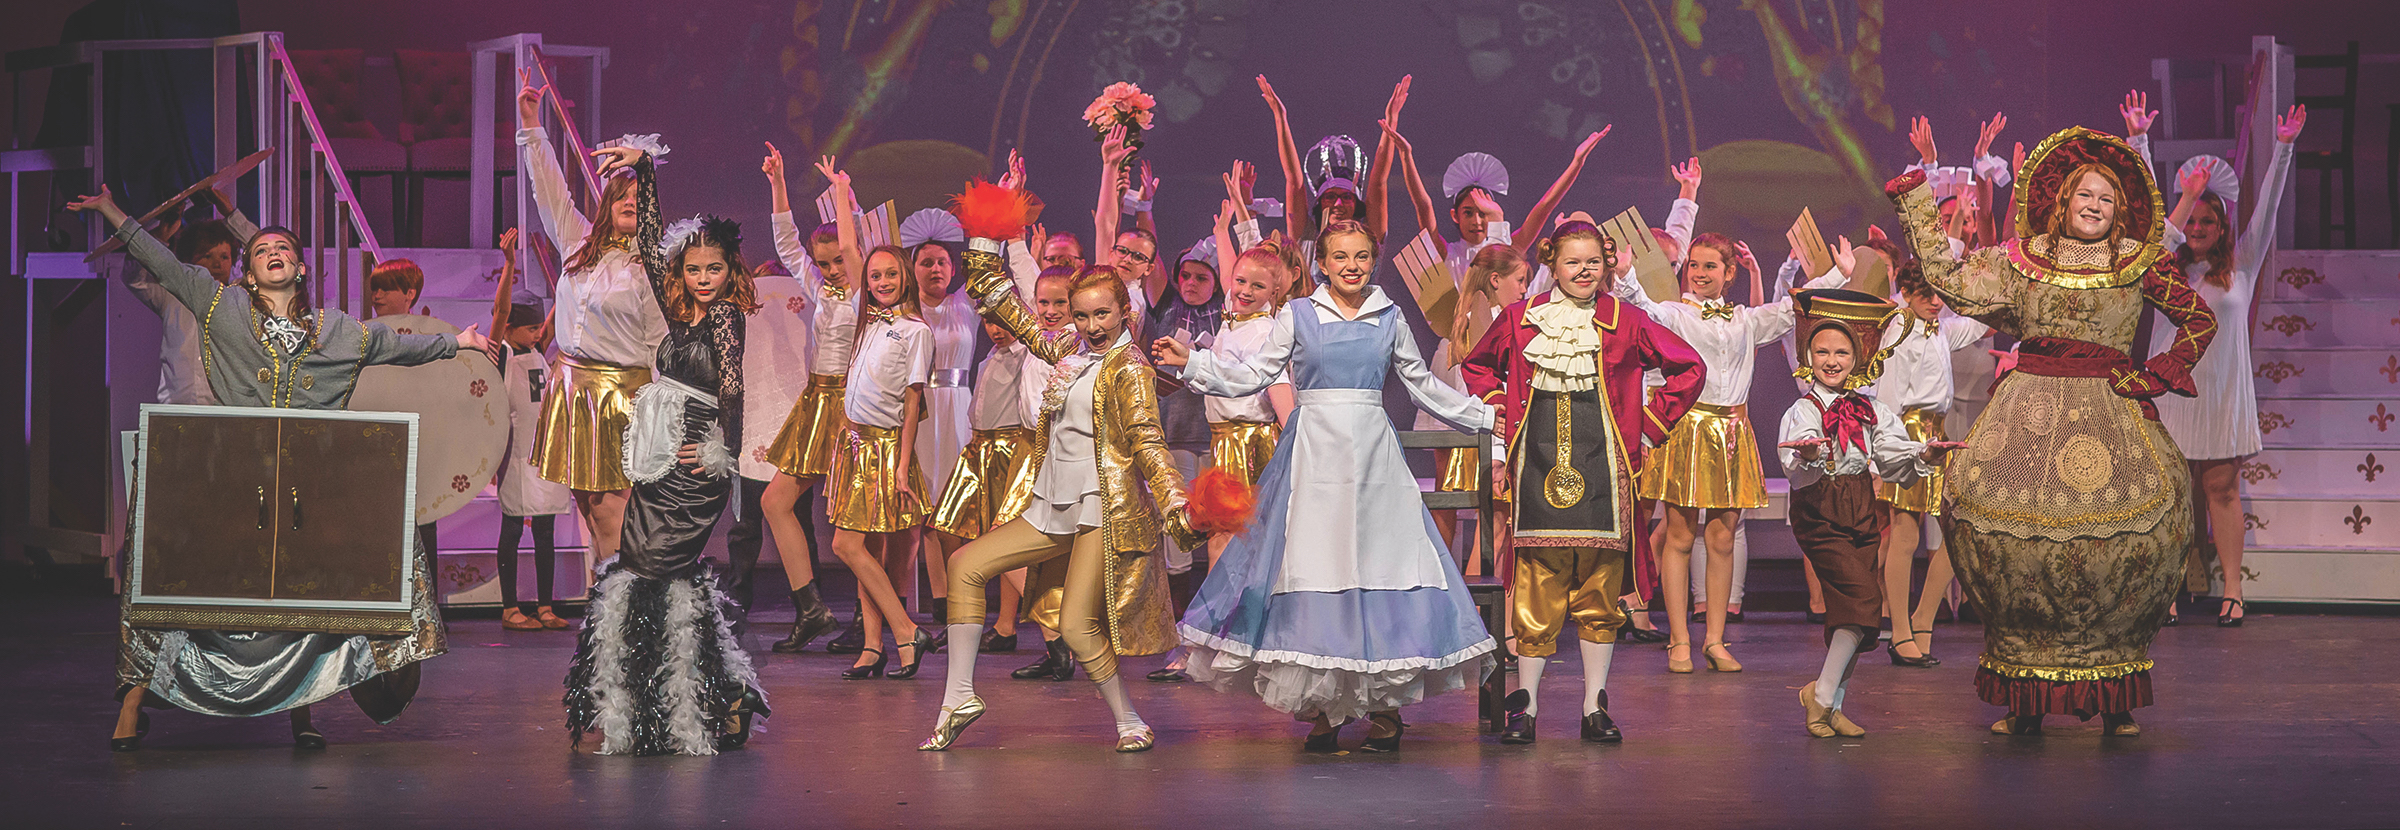 Beauty and the Beast performance photo